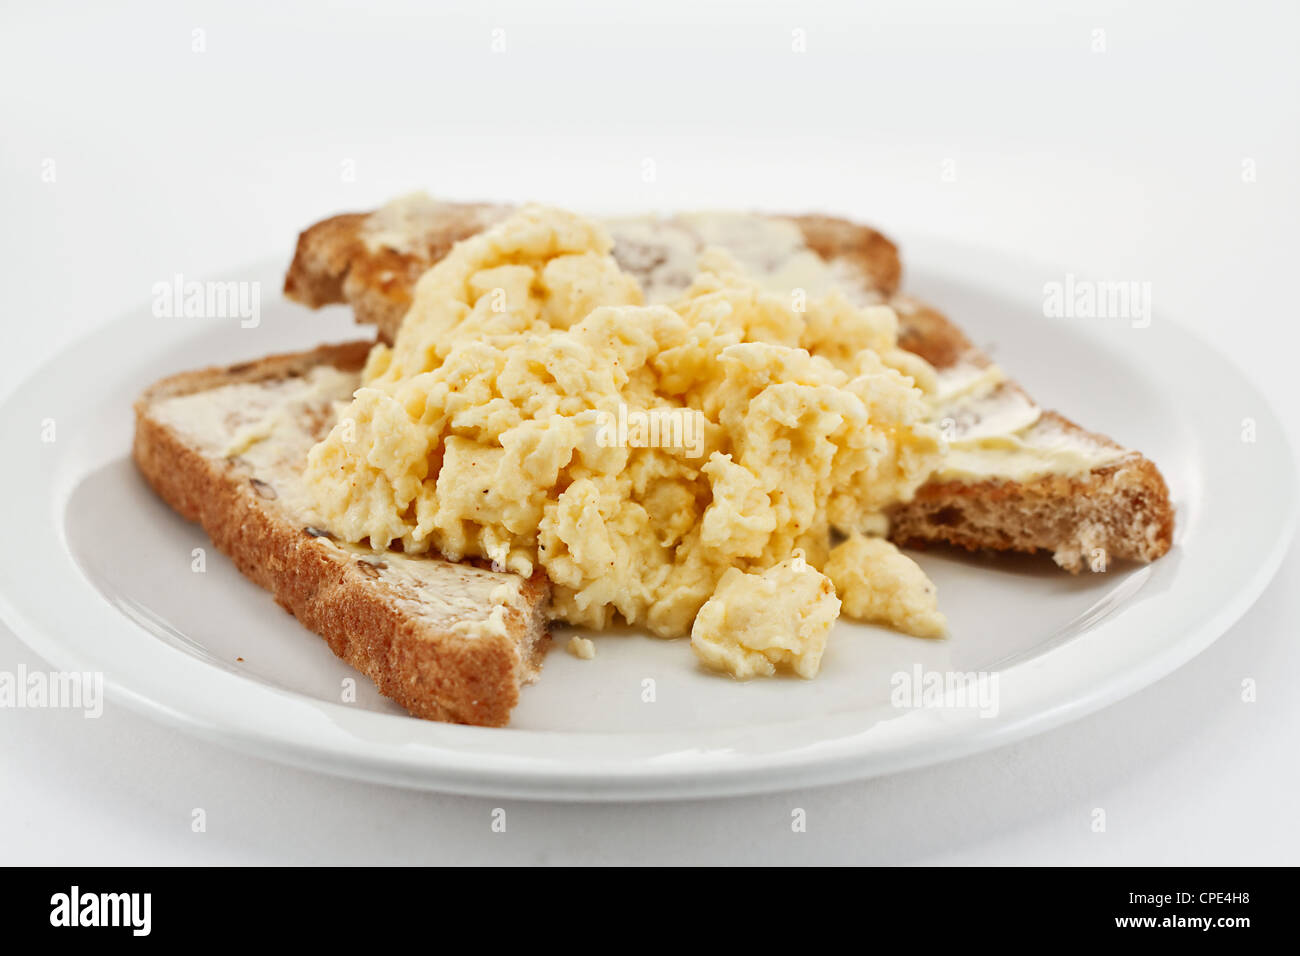 Scrambled eggs on toast close up - Stock Image